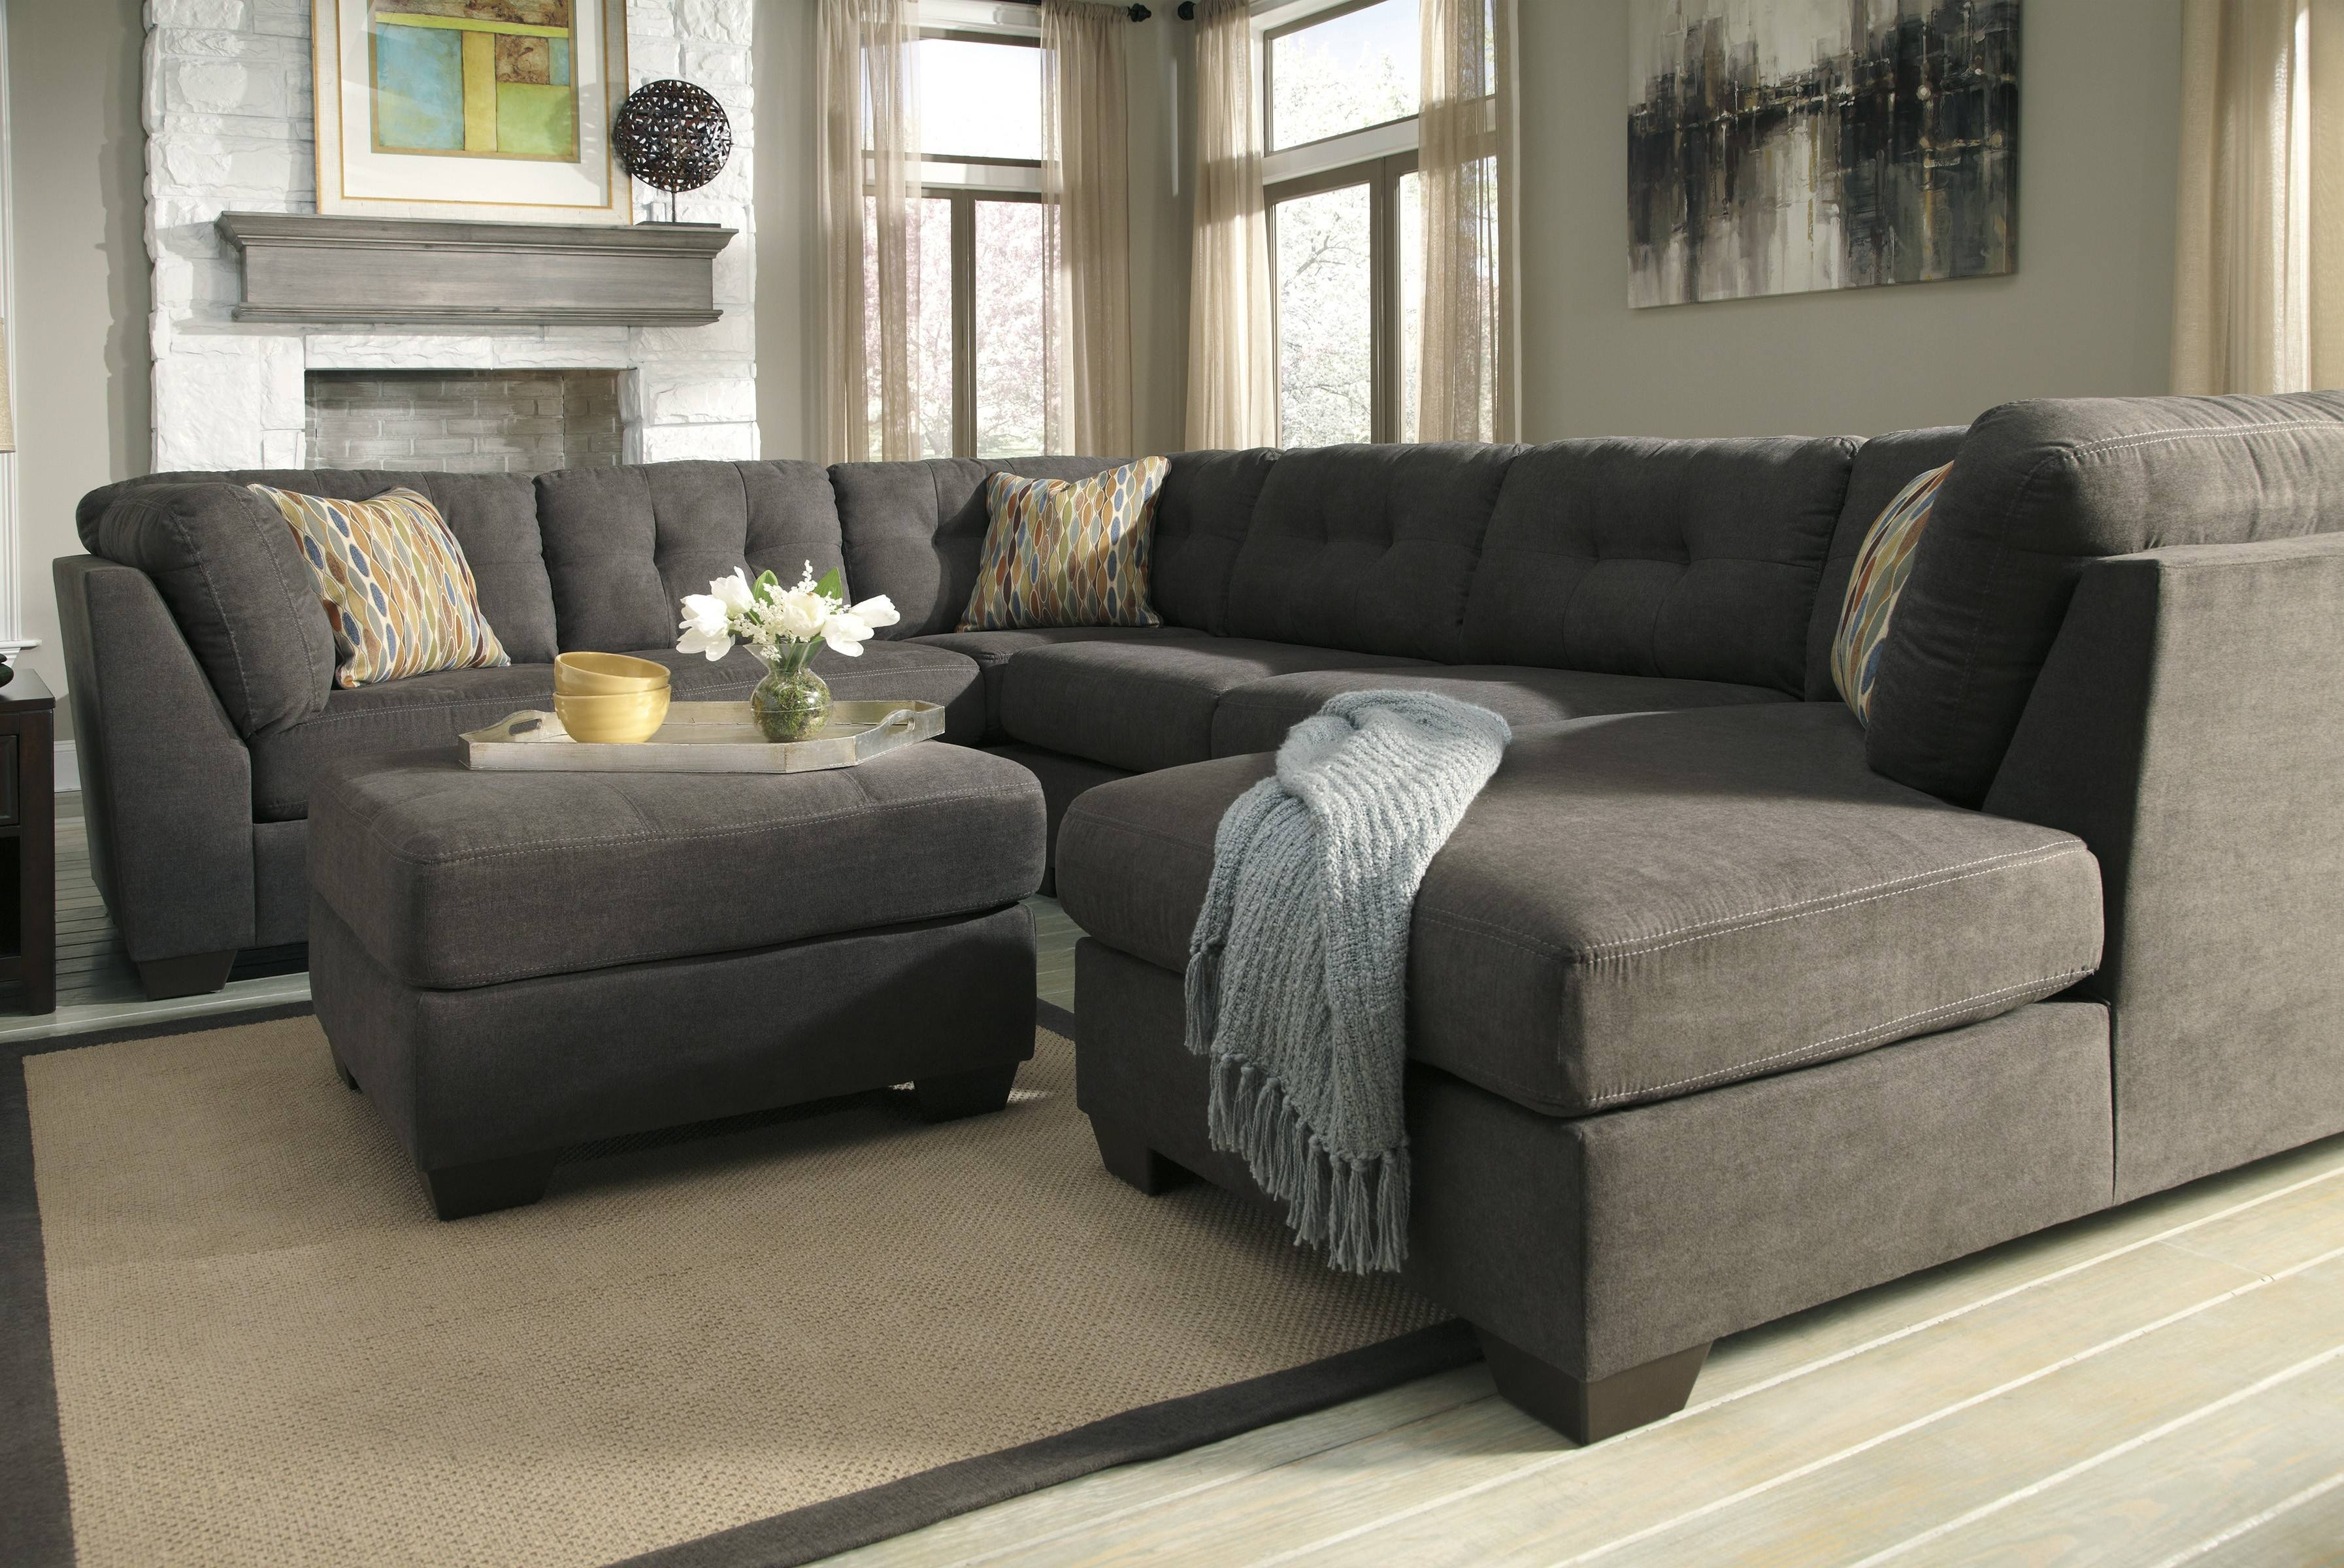 Cozy Sectional Sofa Throws 30 For Your Bauhaus Sectional Sofas inside Bauhaus Furniture Sectional Sofas (Image 8 of 15)